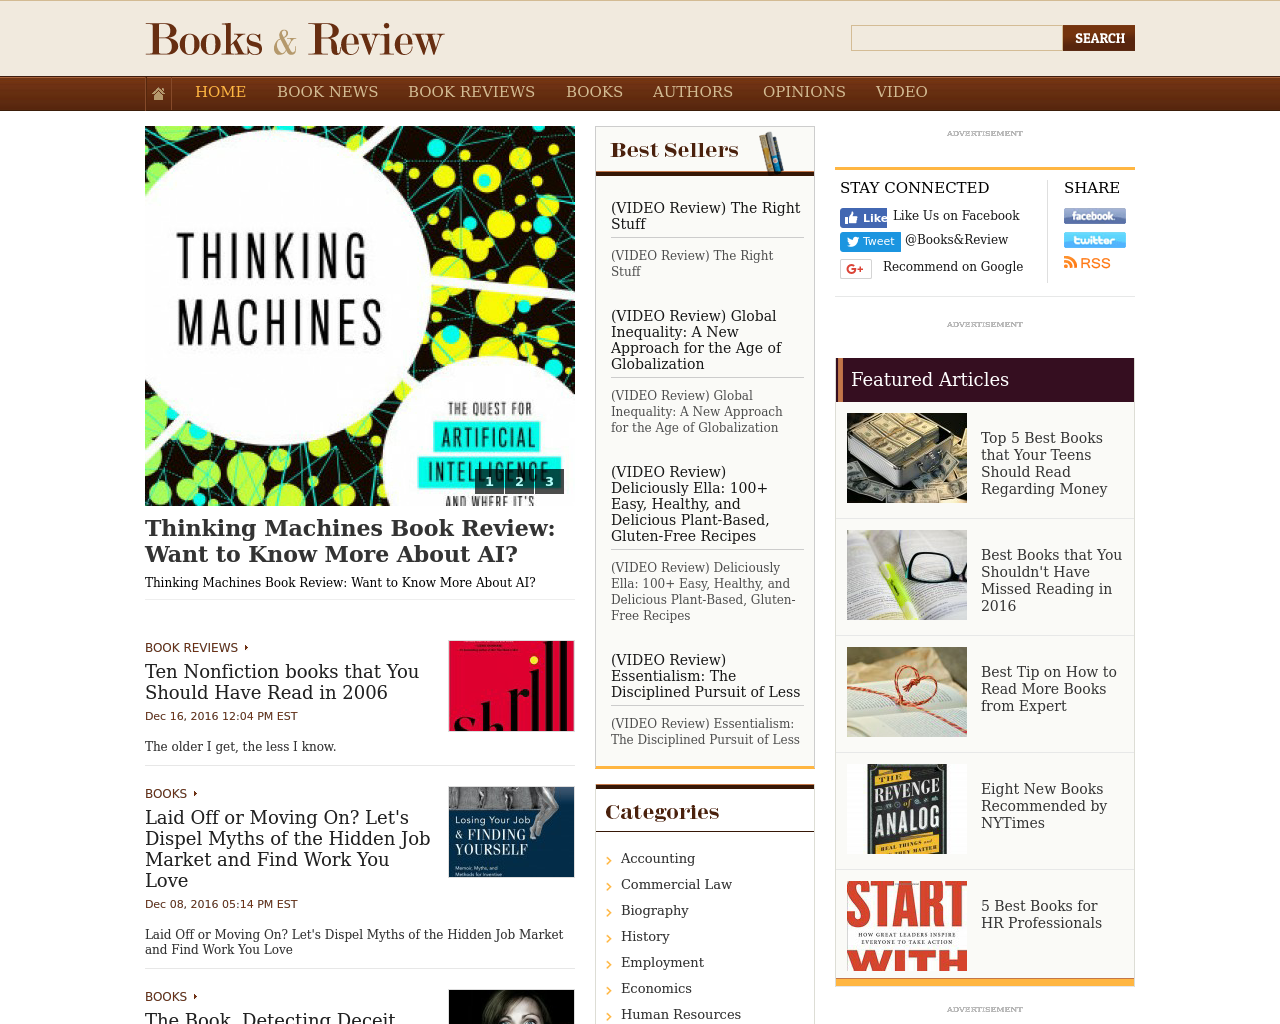 Books-&-Review-Advertising-Reviews-Pricing